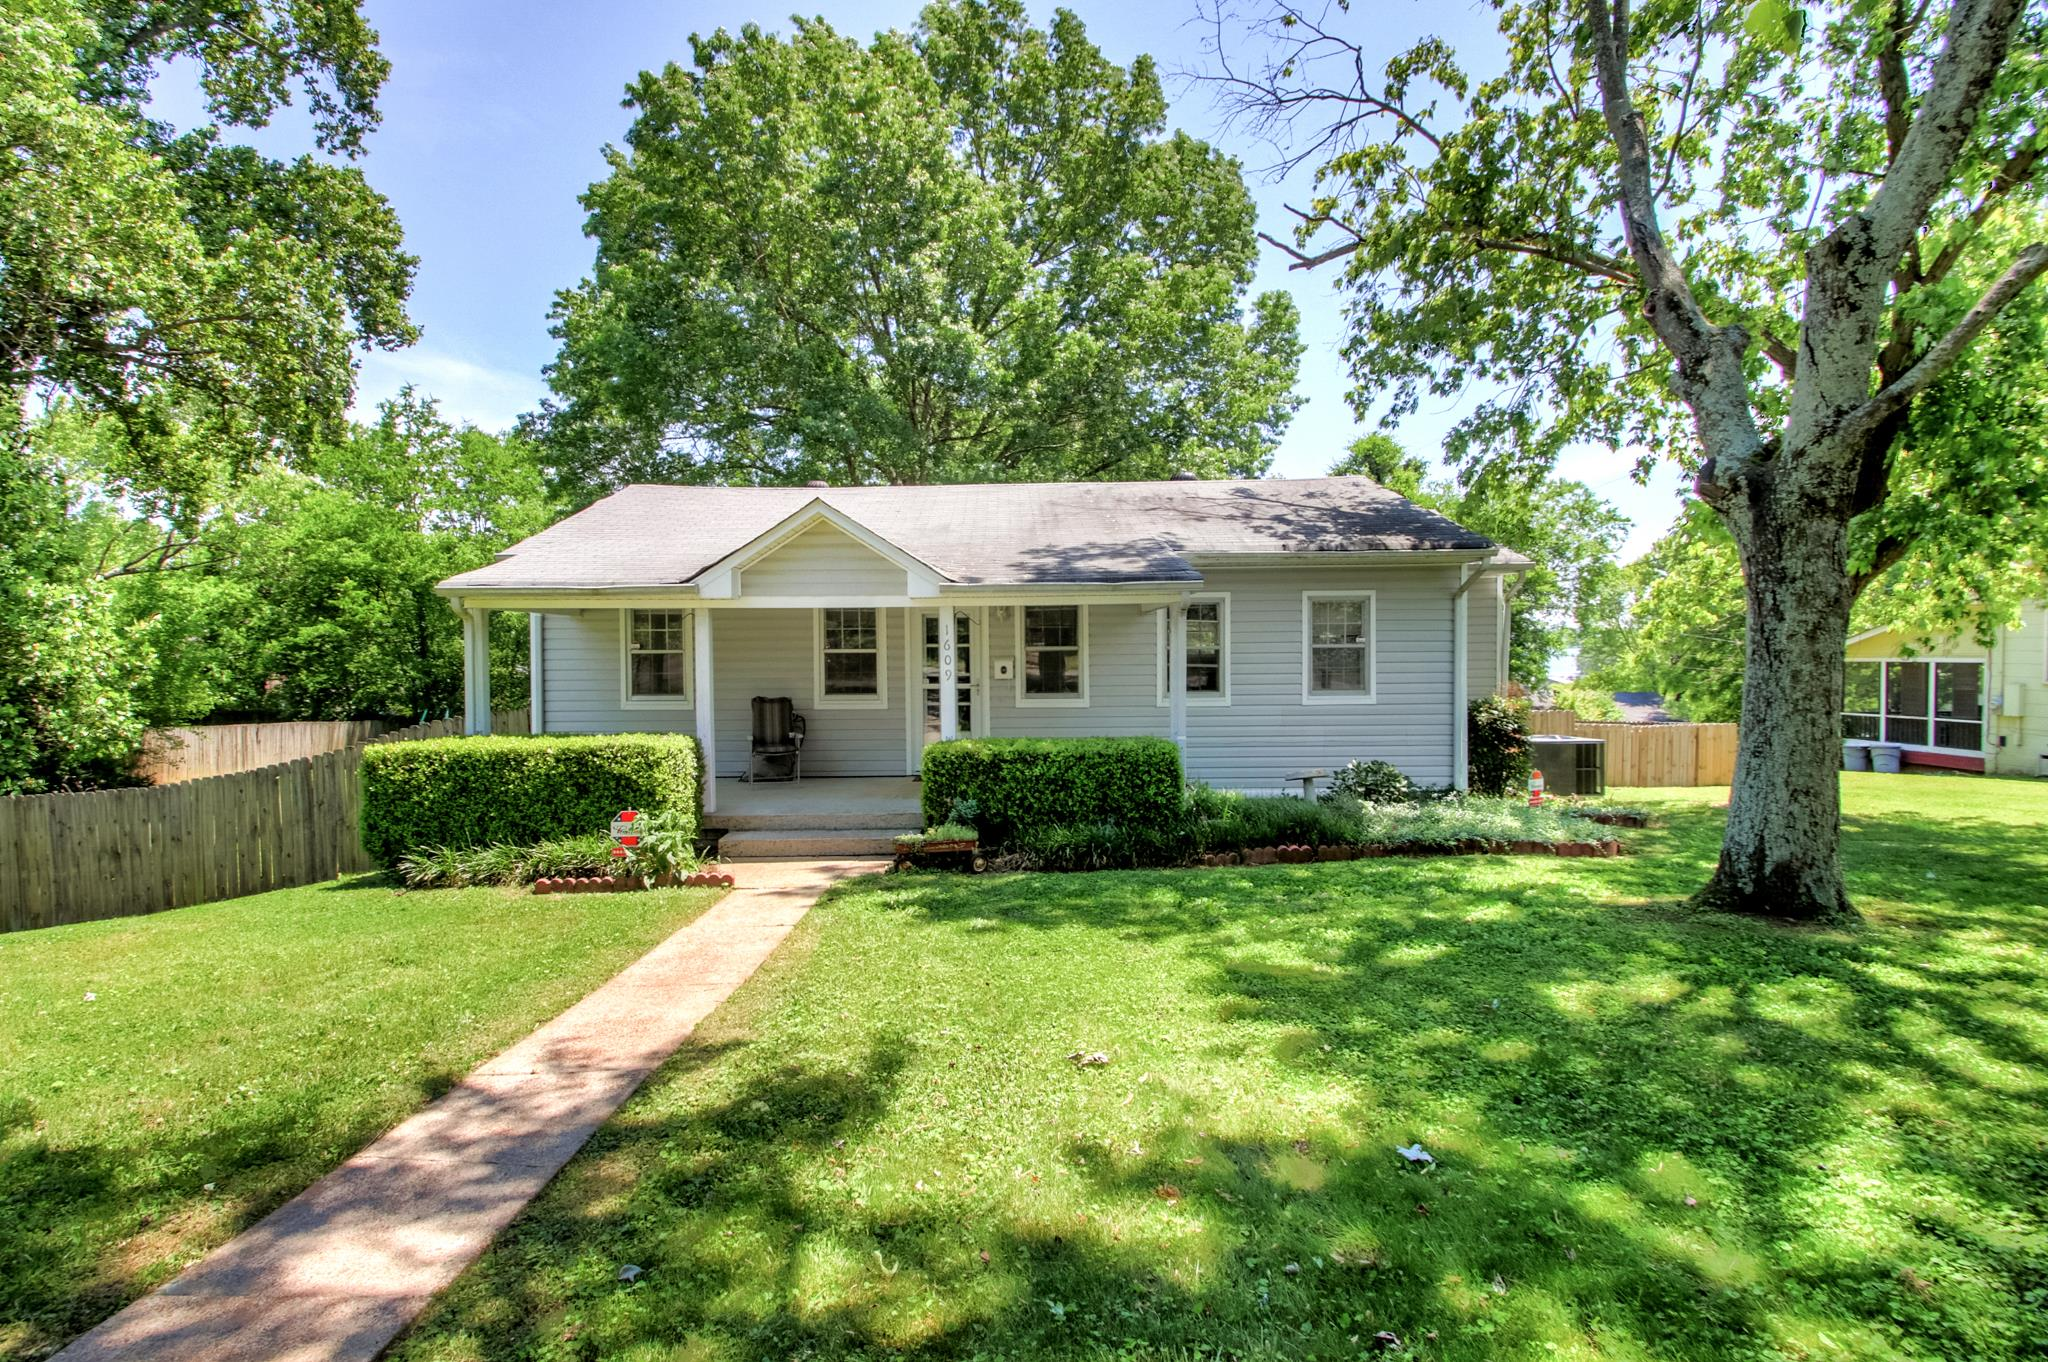 1609 Bondurant St, Old Hickory, TN 37138 - Old Hickory, TN real estate listing